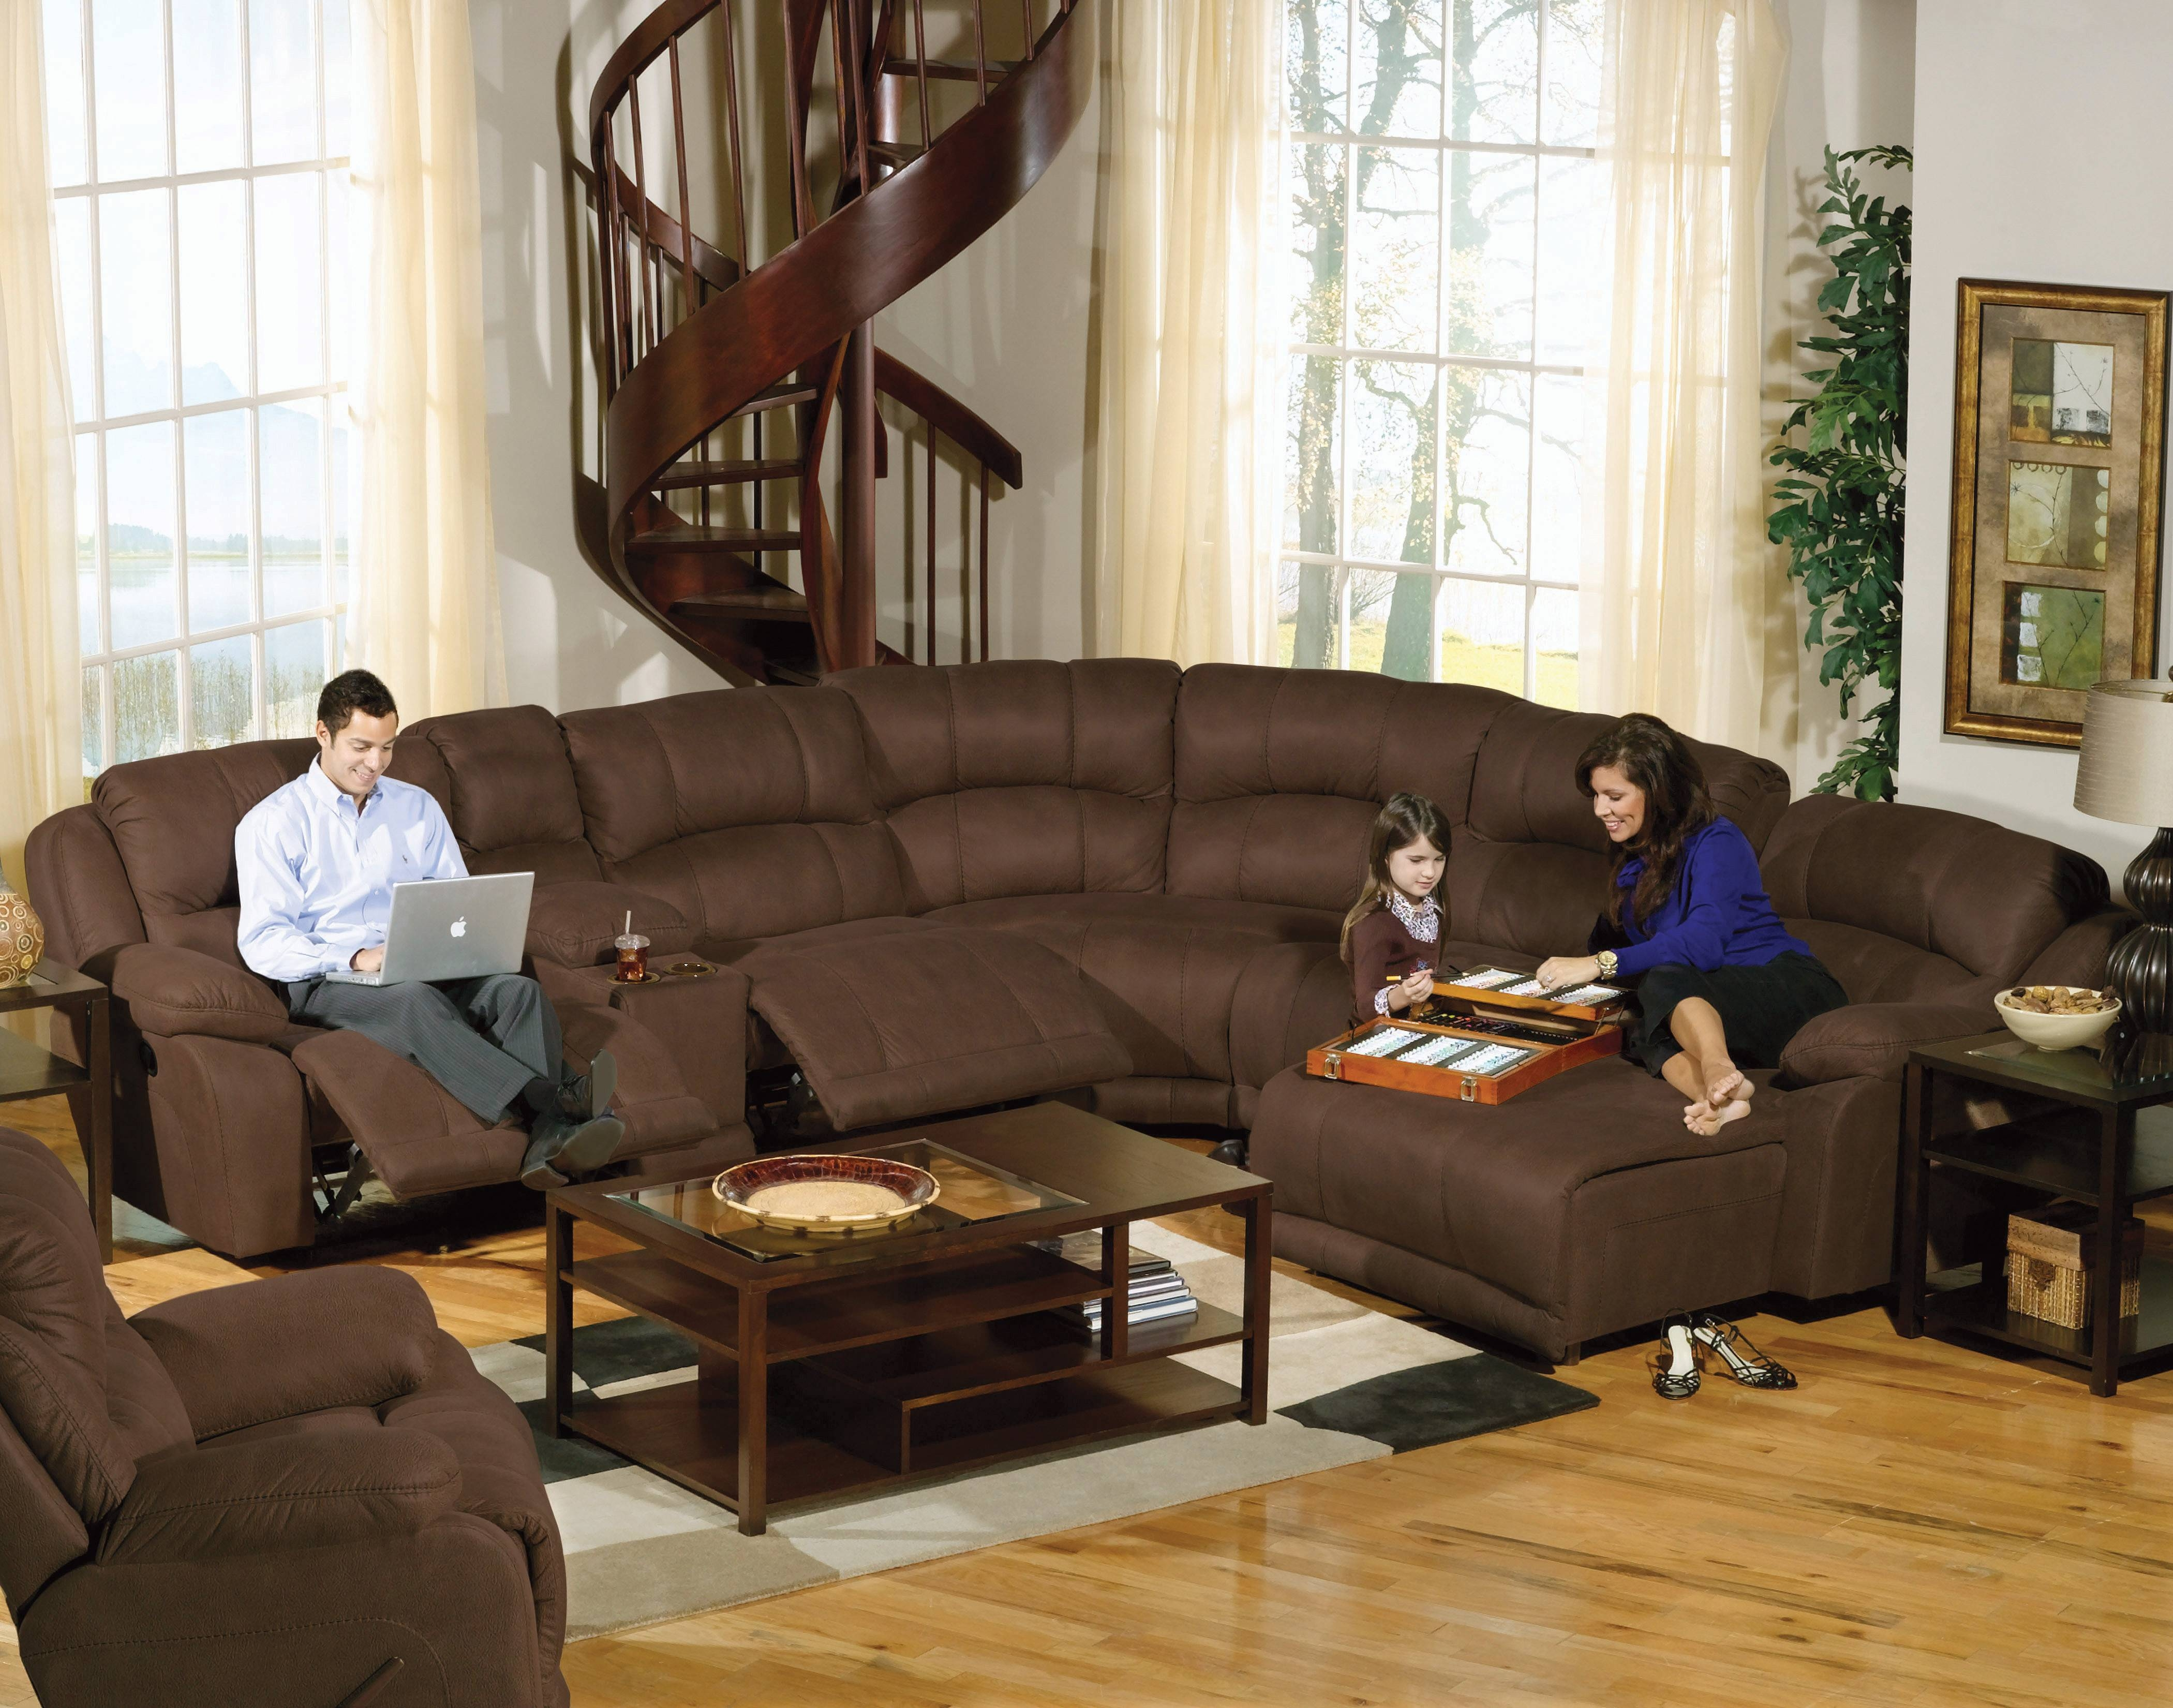 Elegant Large Sectional Sofas With Recliners 94 In Curved pertaining to Curved Sectional Sofas With Recliner (Image 4 of 15)